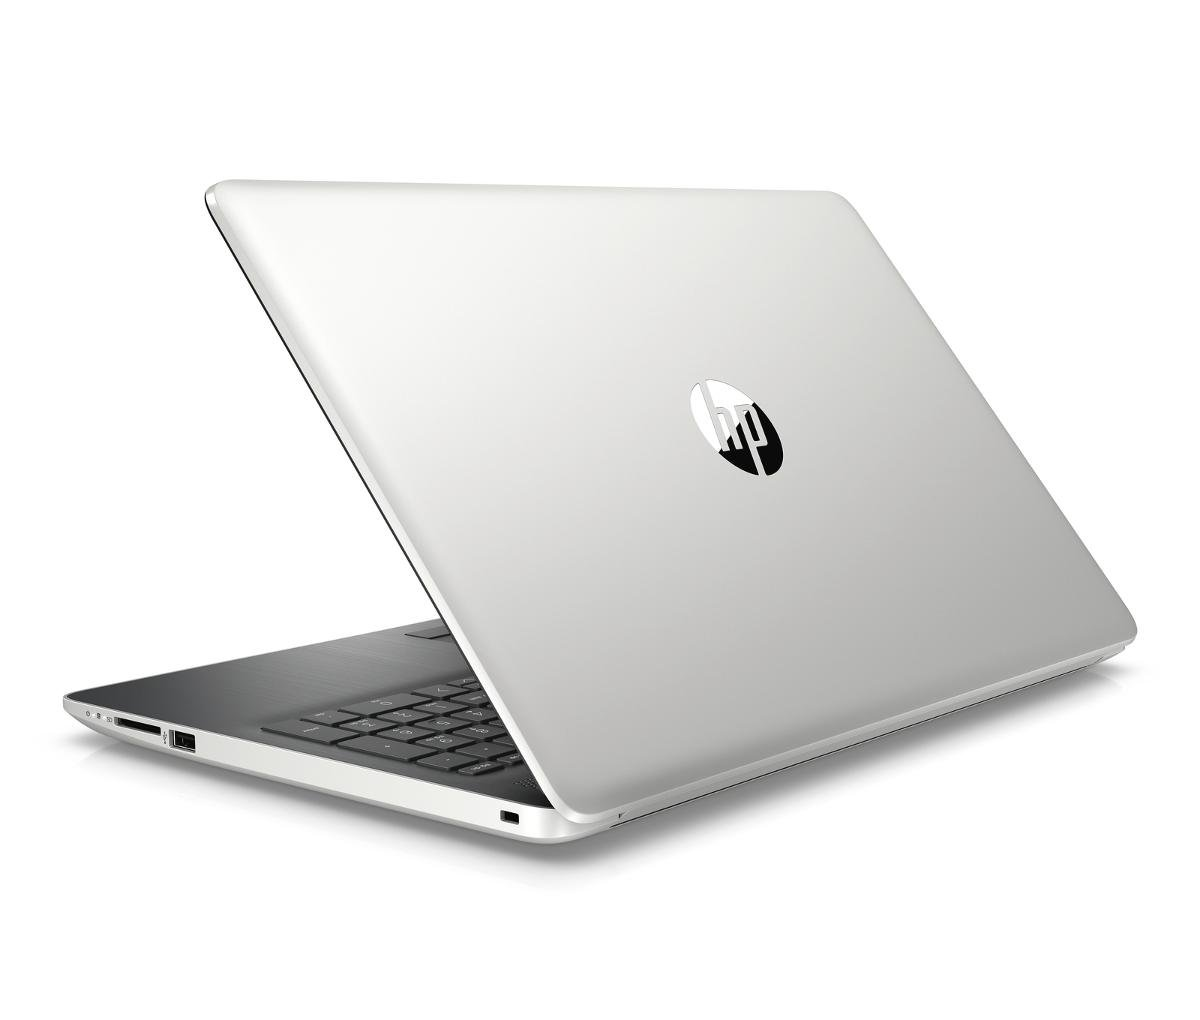 "Laptop HP 15-da0002nw 4UG55EA, i3-7020U, 4 GB RAM, 15.6"", 1 TB, Windows 10 Home"